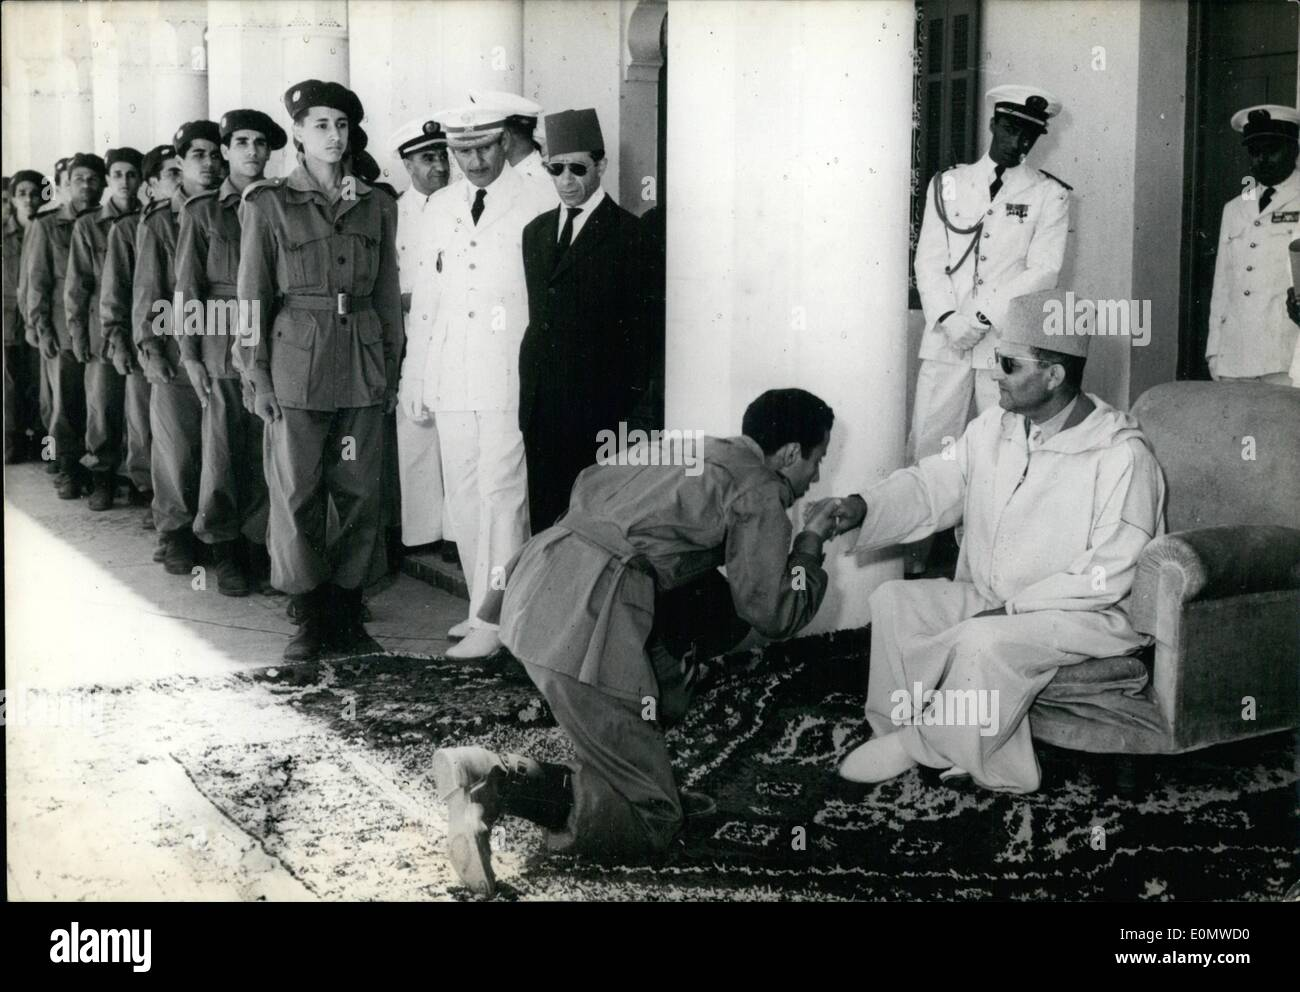 Sep. 09, 1956 - 220 young students-officers, who will be attending several Spanish military academies, gave their oaths to Sultan Ben Youssef, after having been introduced to him. Felue Band, Fine Arts School's Best, & Composer Claude Blondy - Stock Image